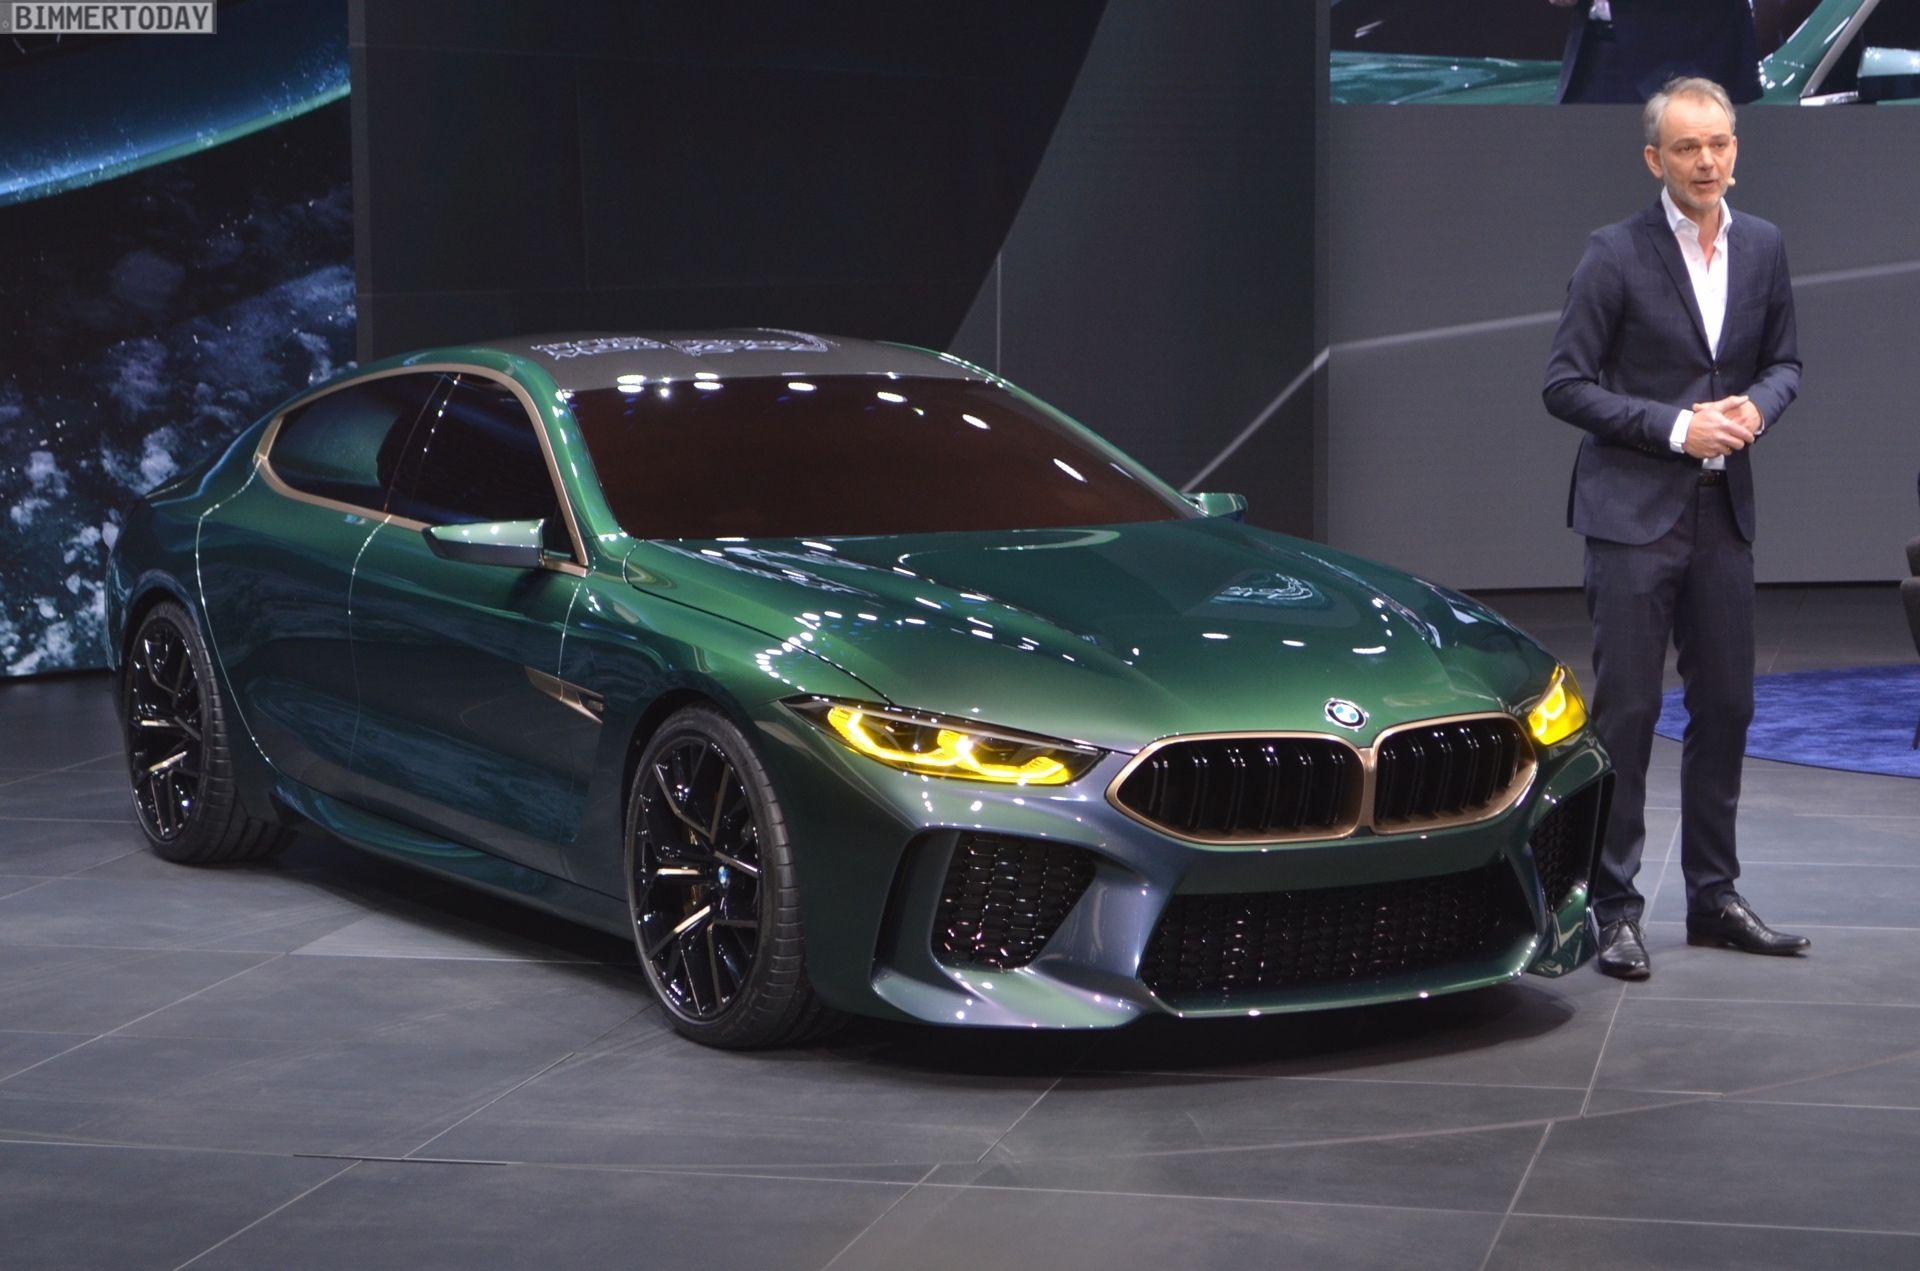 Bmw Concept M8 Gran Coupe Real Life Photos With Images Bmw